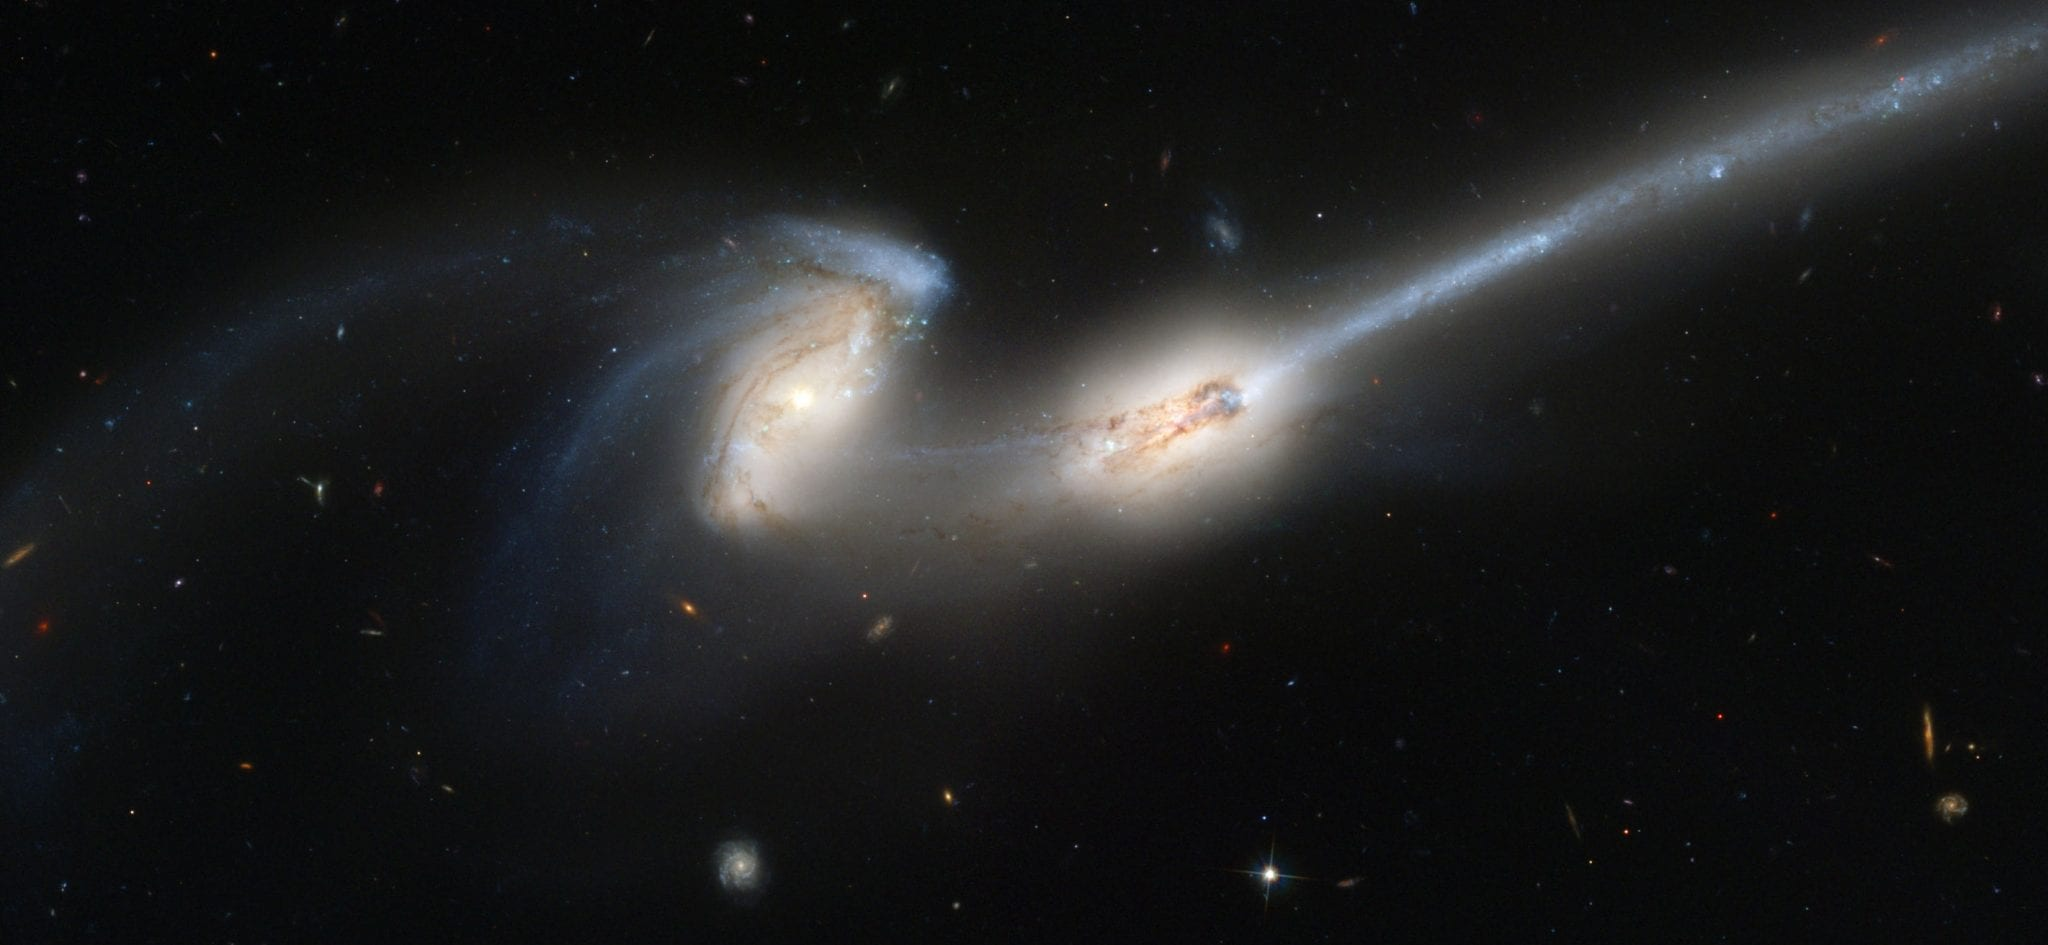 a picture of 2 universes in the vastness or dark space